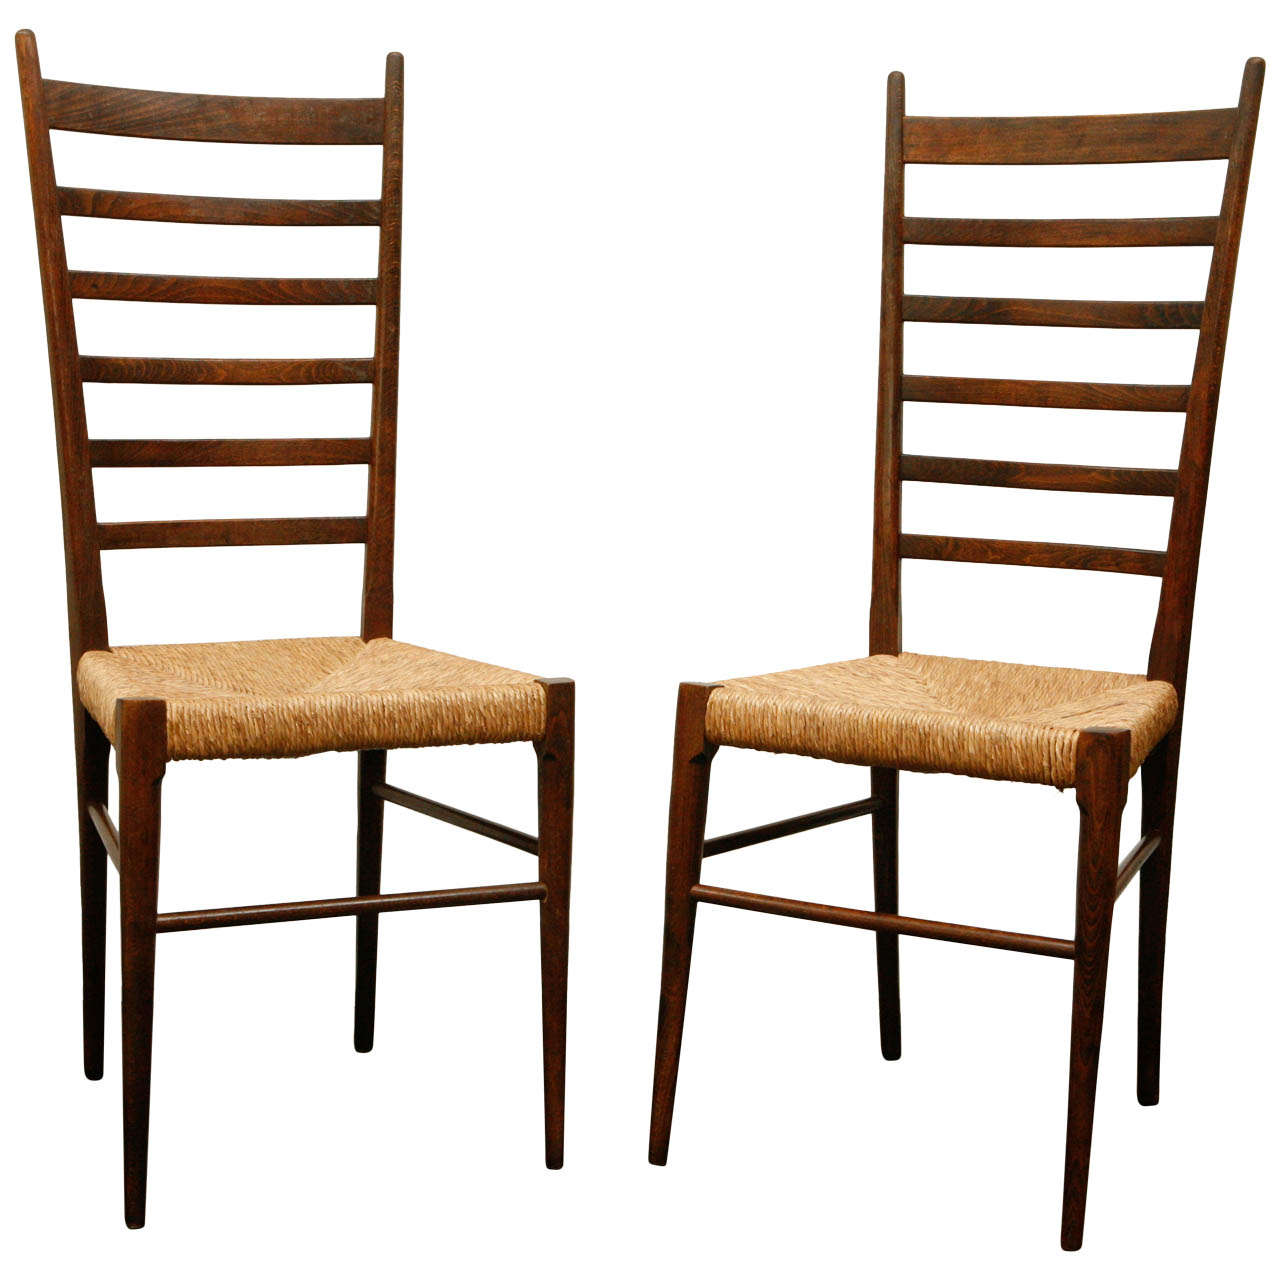 Pair Of Italian Ladder Back Chairs With Woven Seats At 1stdibs